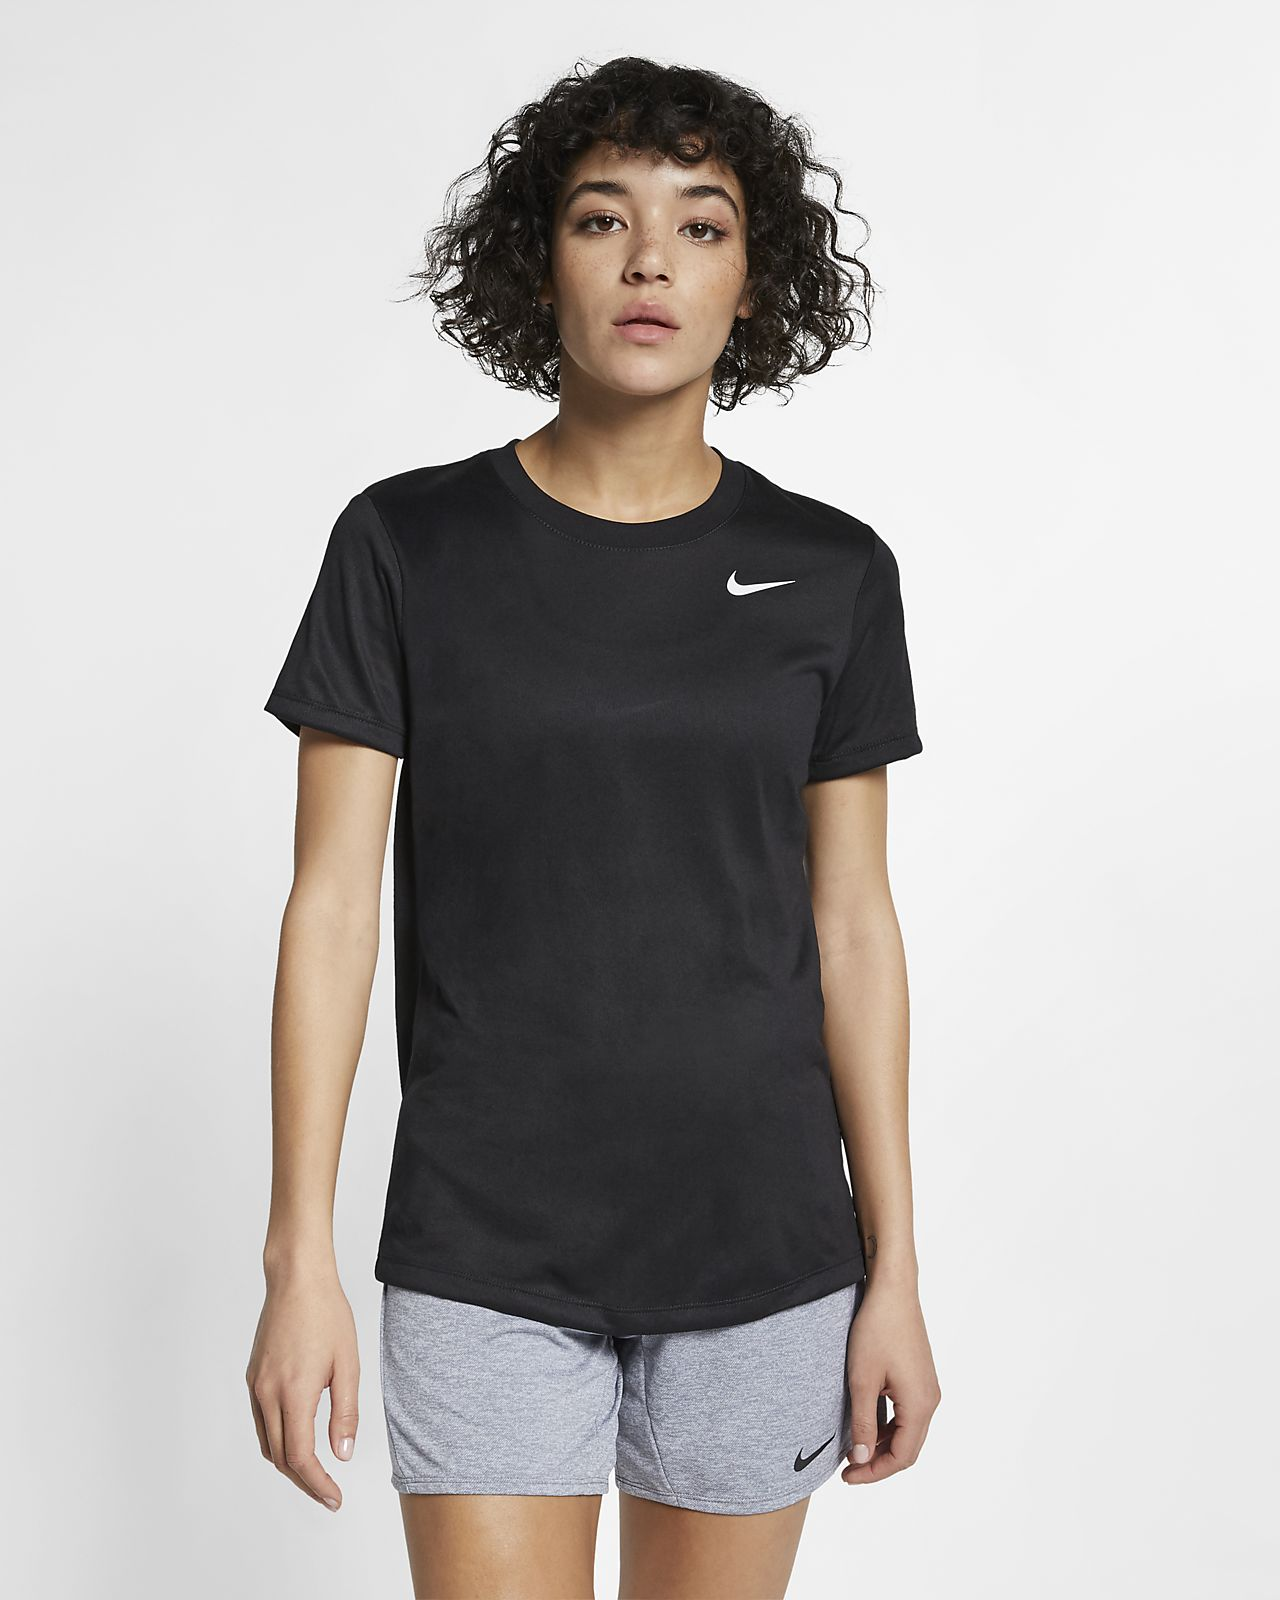 Nike Dri-FIT Women's Training T-Shirt